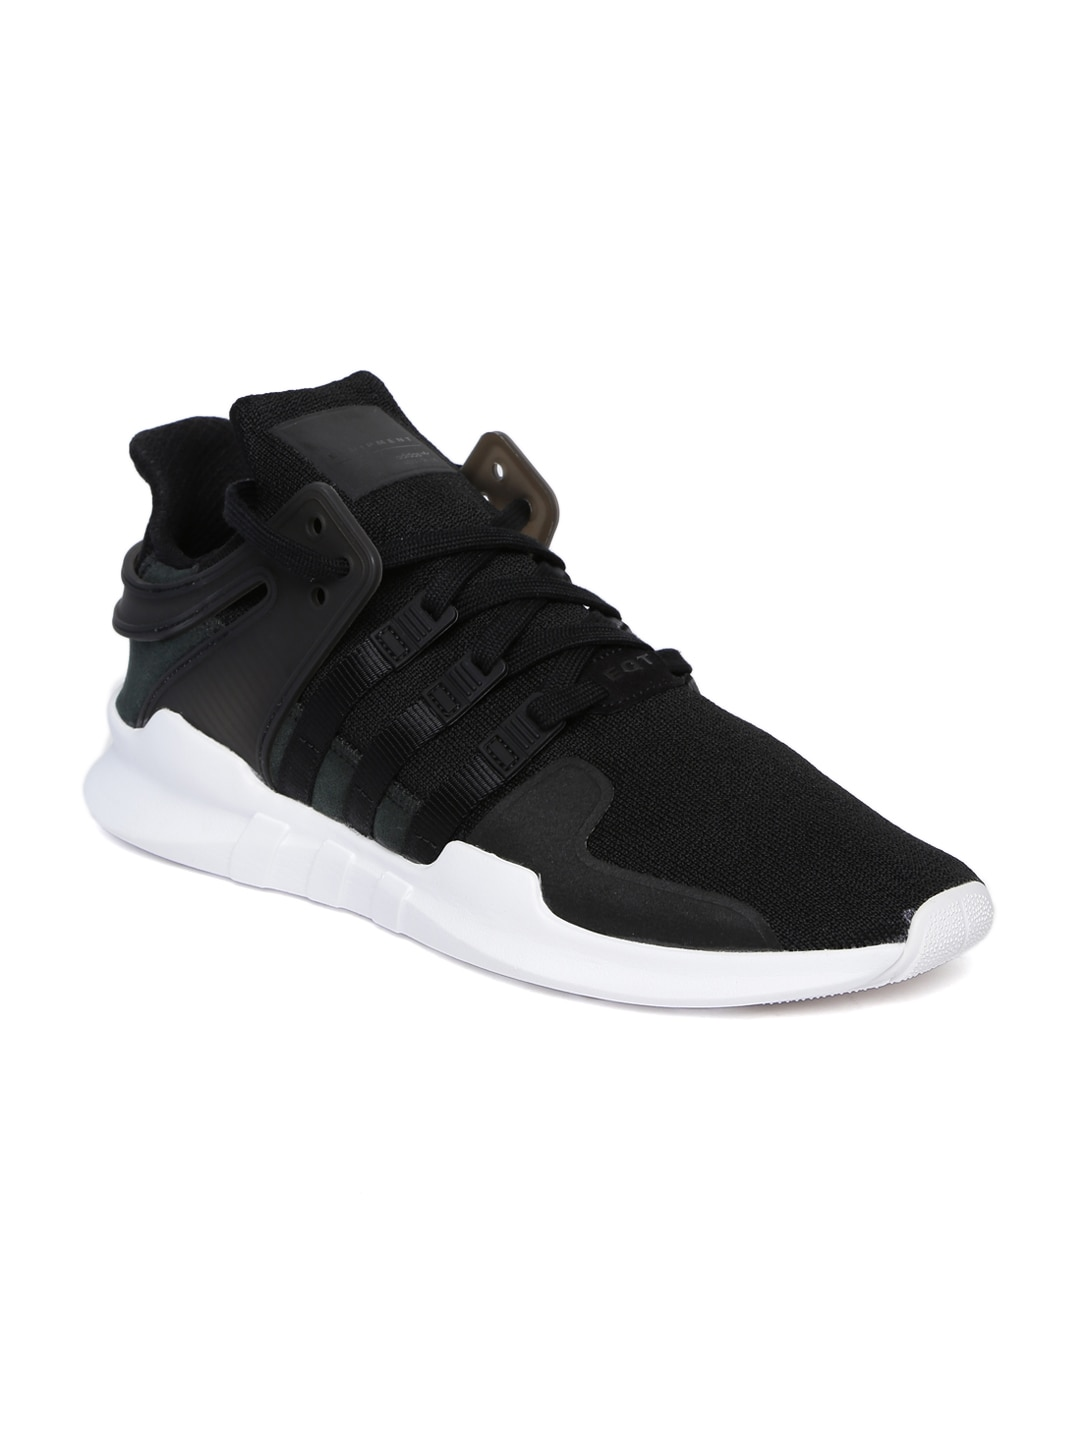 adidas shoes high tops black and white. adidas shoes high tops black and white 2